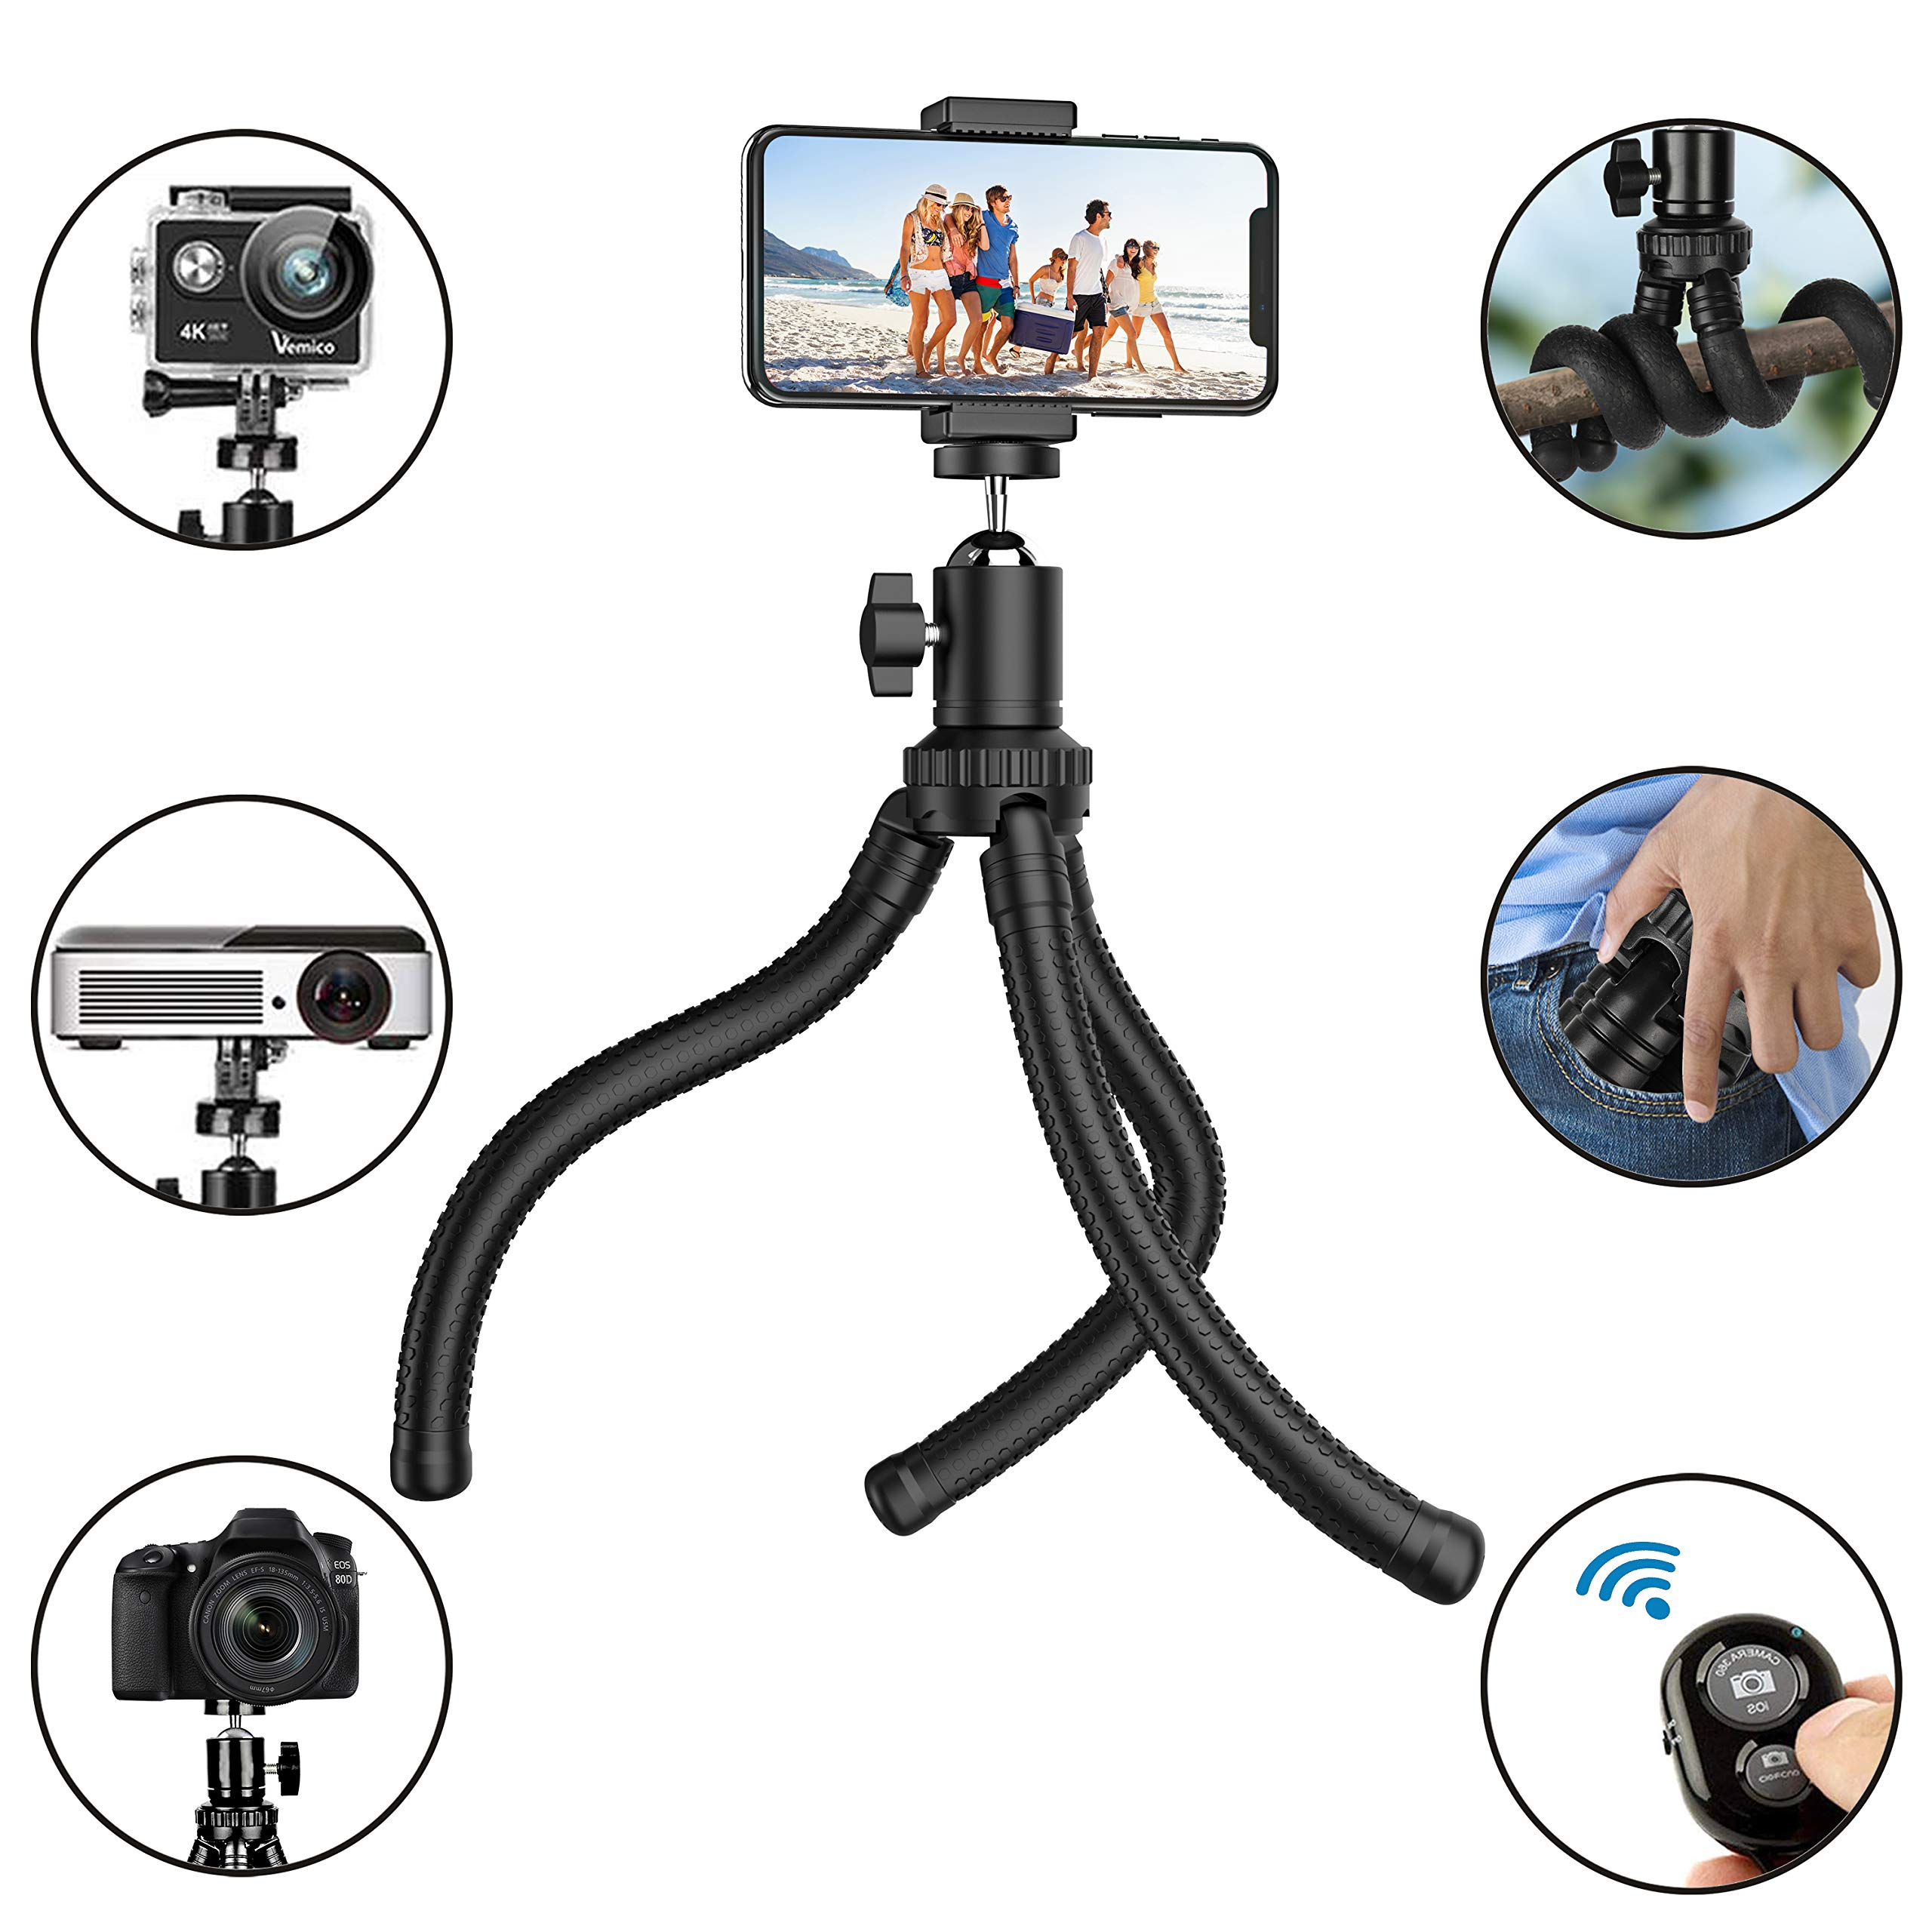 Phone Tripod, Flexible Cell Phone Tripod with Wireless Remote Shutter and Universal Clip, Adjustable Tripod Stand Holder for iPhone, Android Phone, Camera Gopro (Upgraded) by Aptoyu